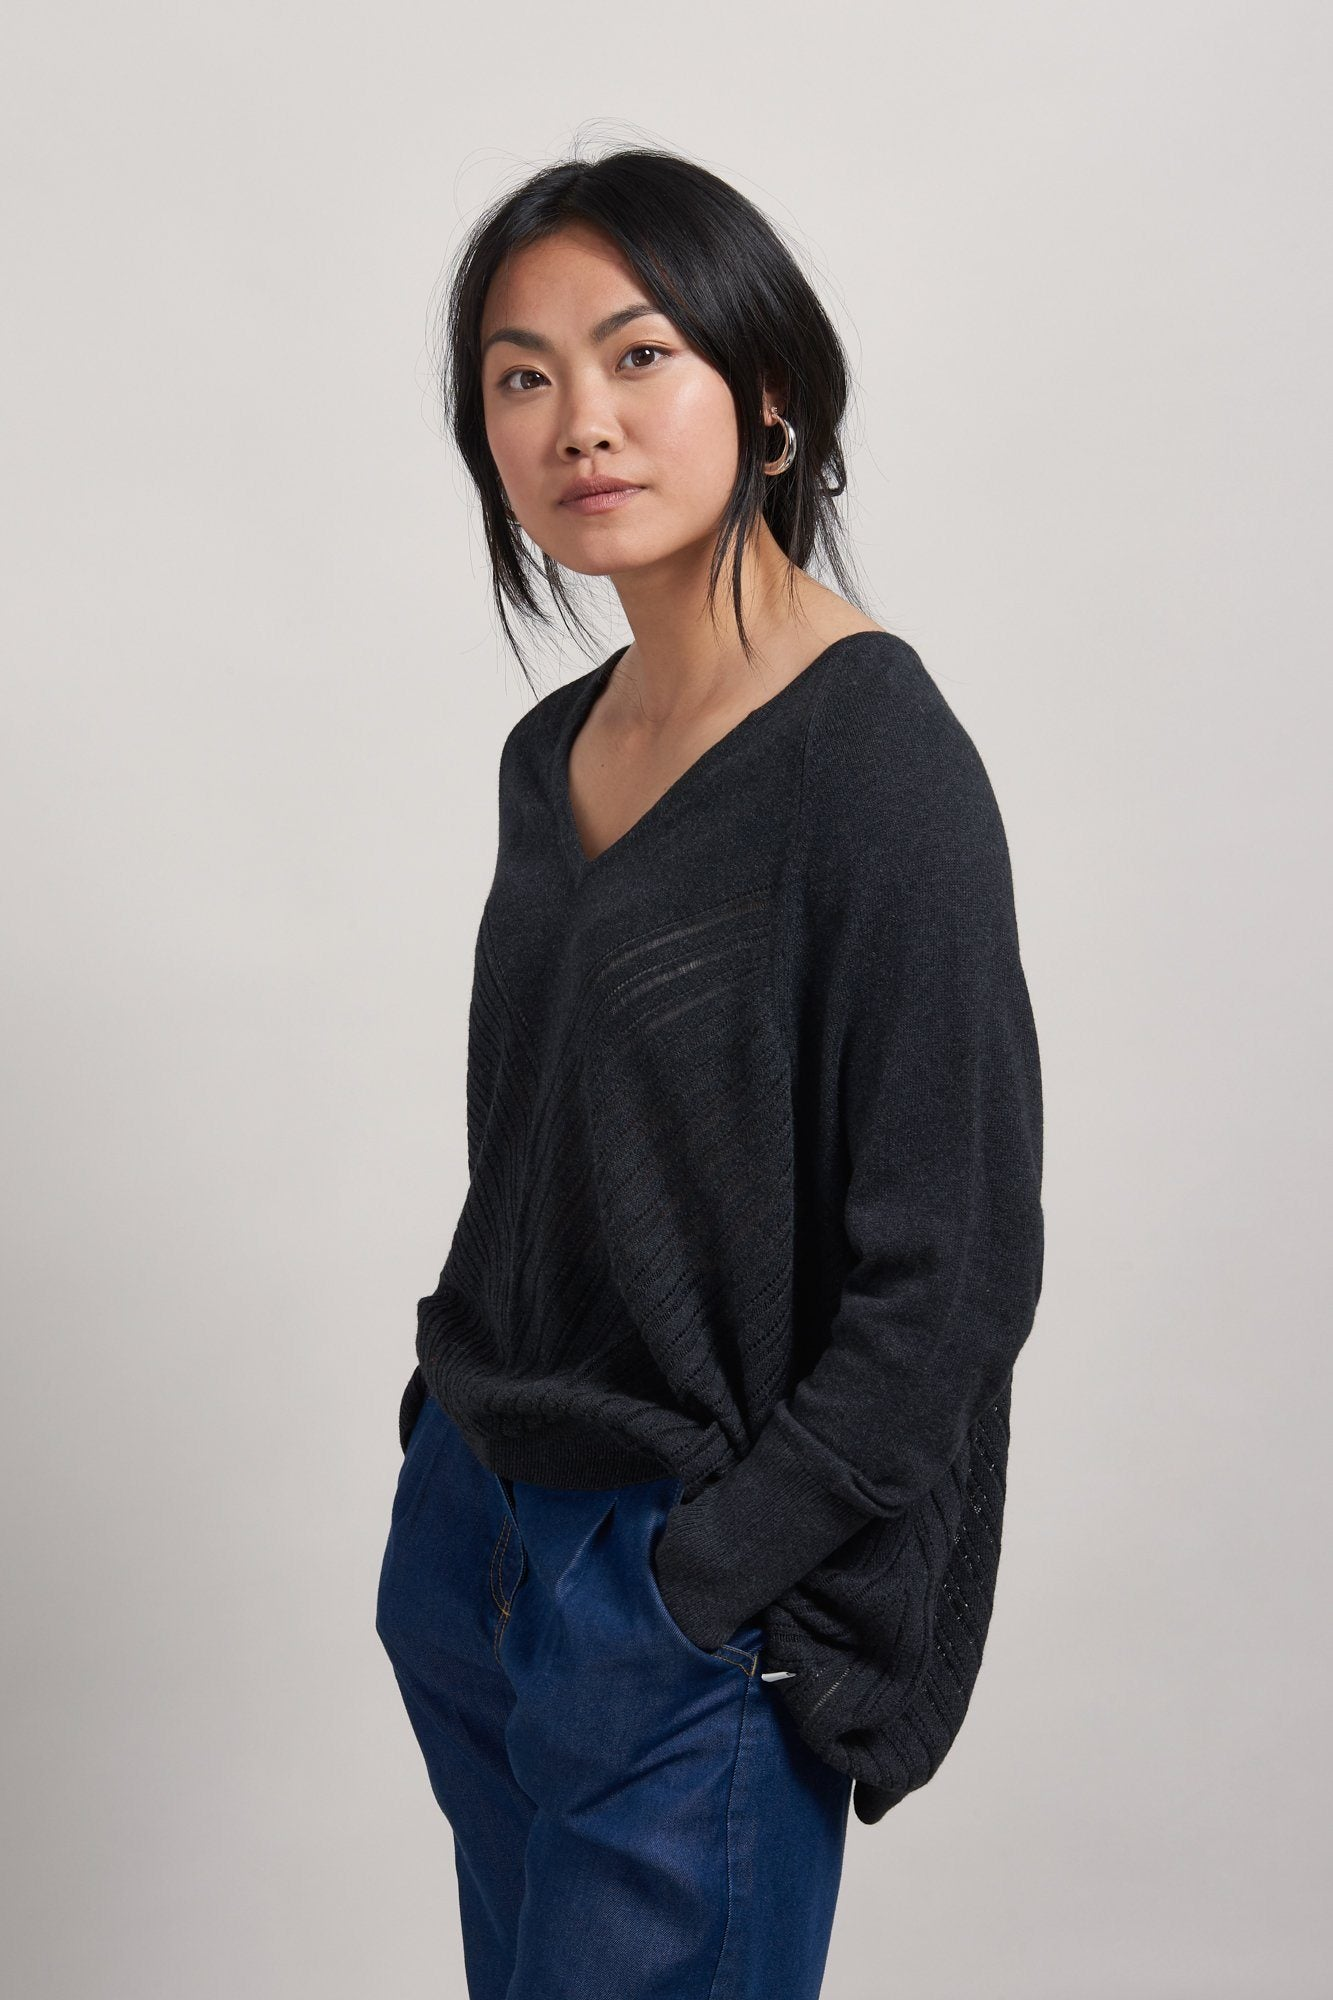 Jumper - MAHI Organic Cotton Jumper Coal